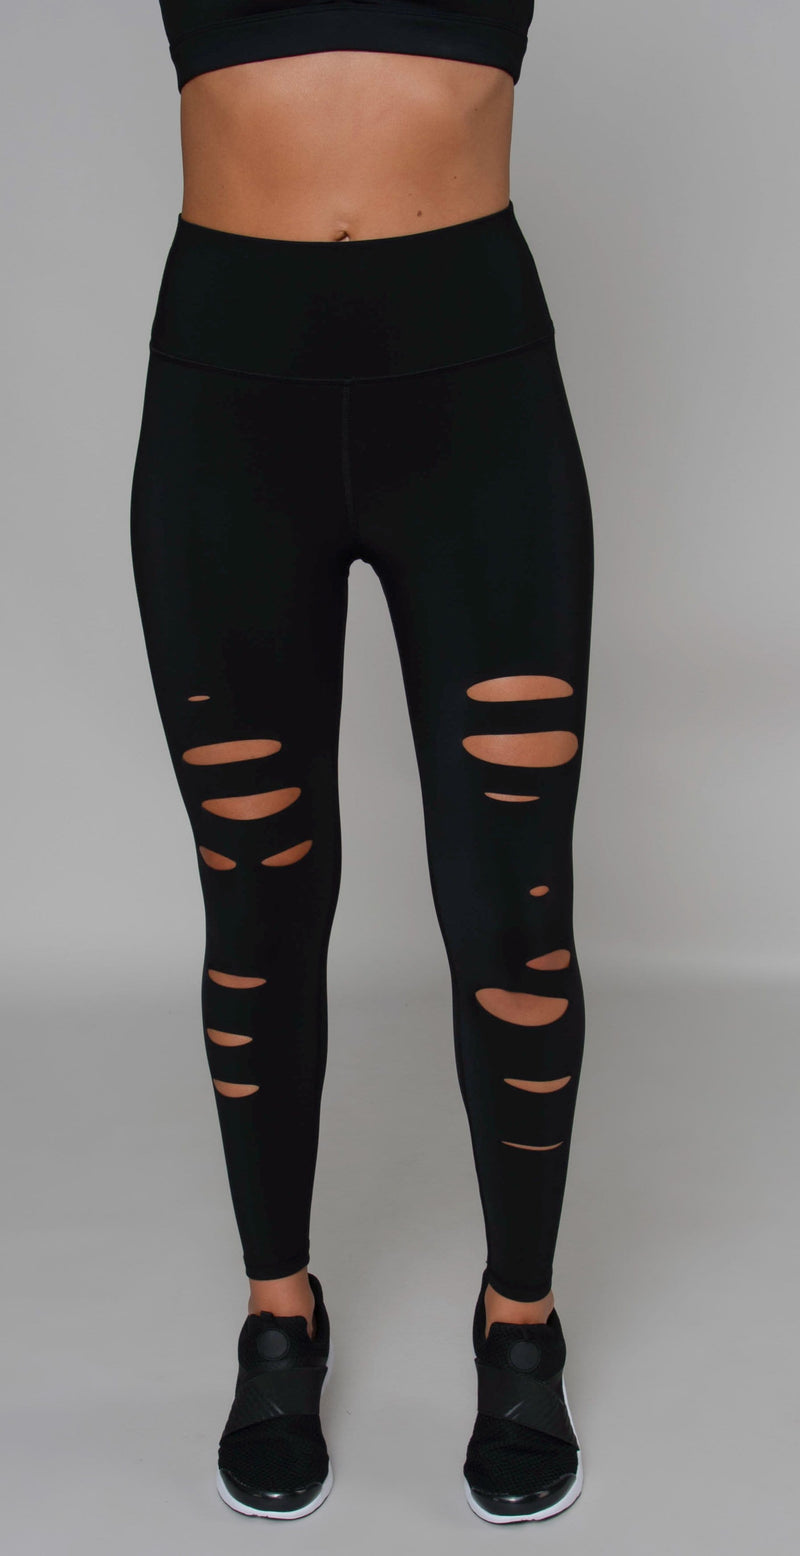 Alo Yoga High-Waist 7/8 Ripped Warrior Legging Black